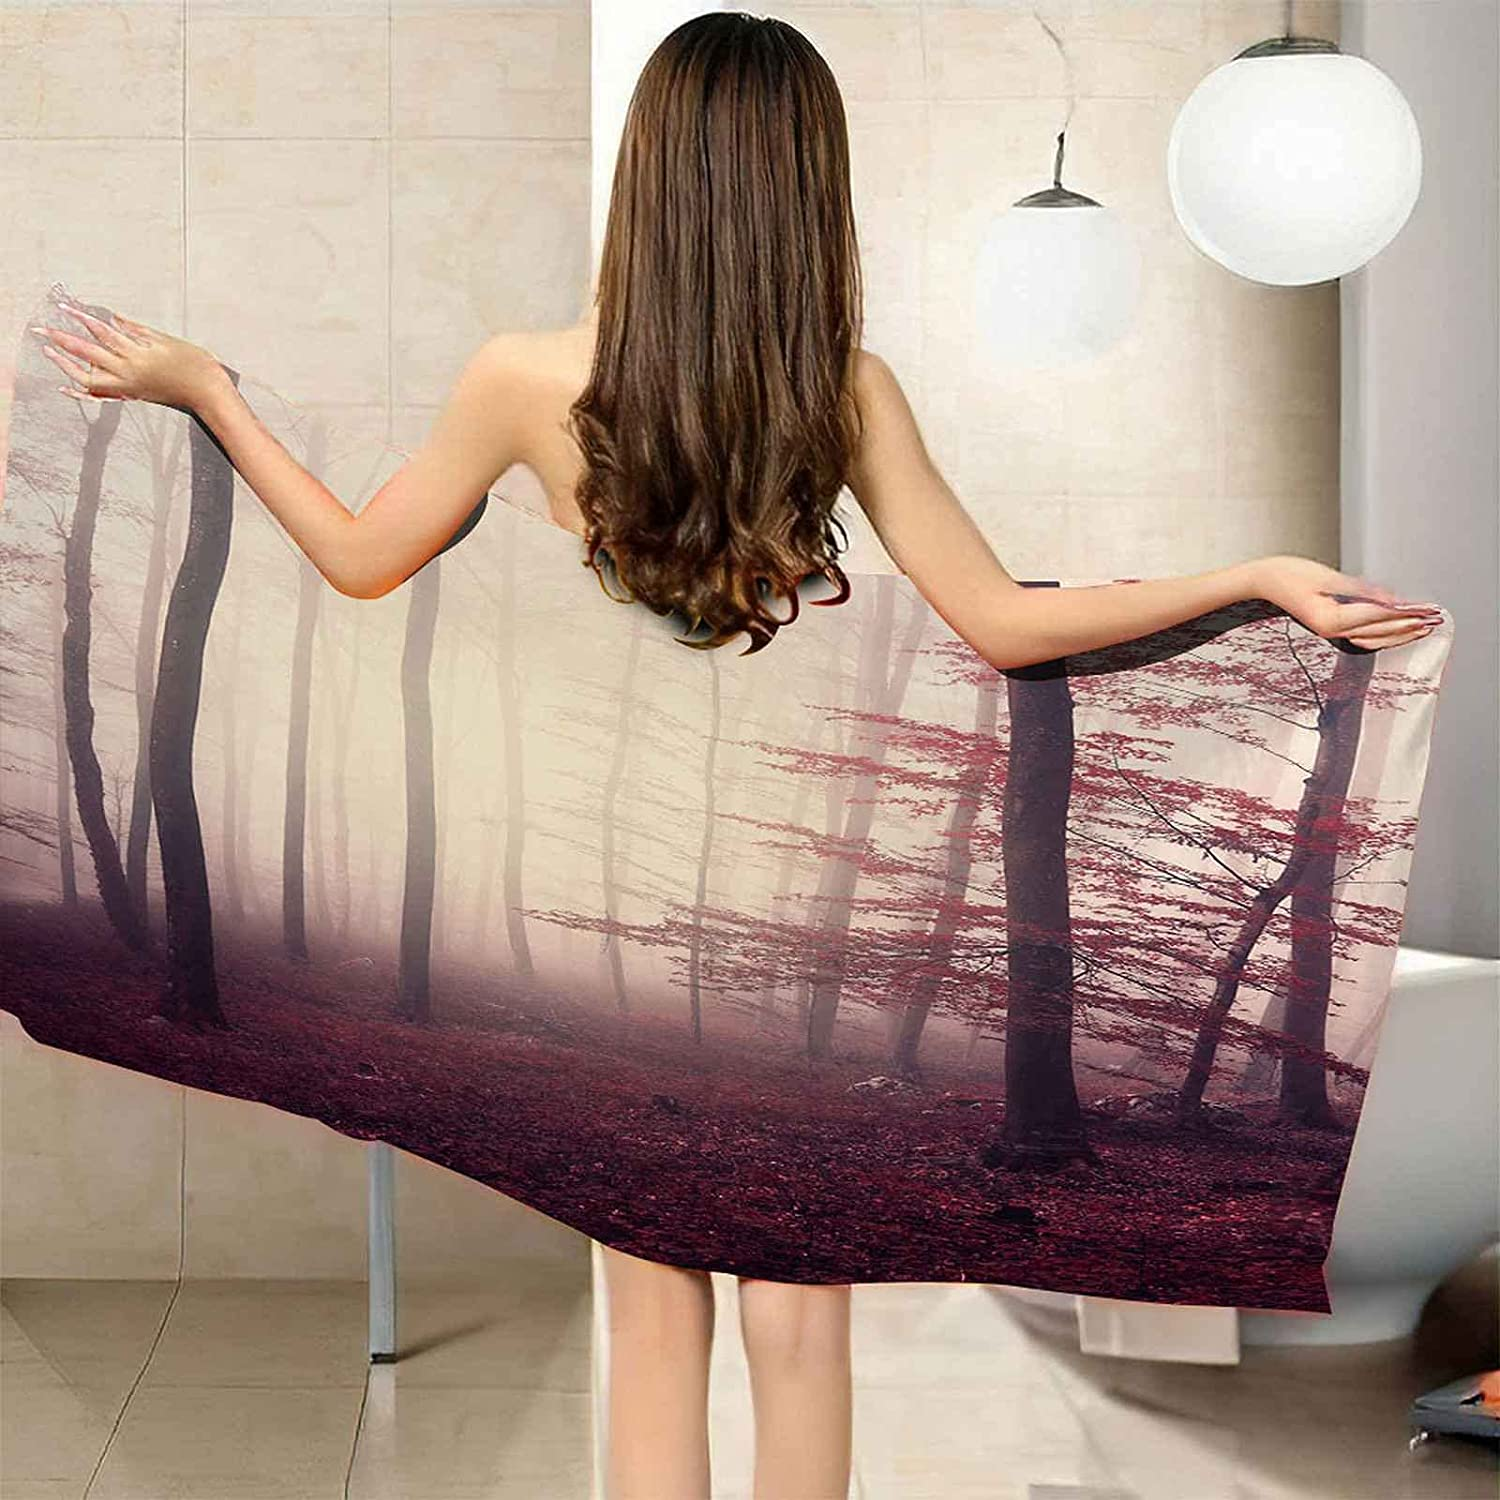 IRUAIF Microfiber Dedication Beach Towel Red Forest Quick Maple 78.7x78.7in Over item handling